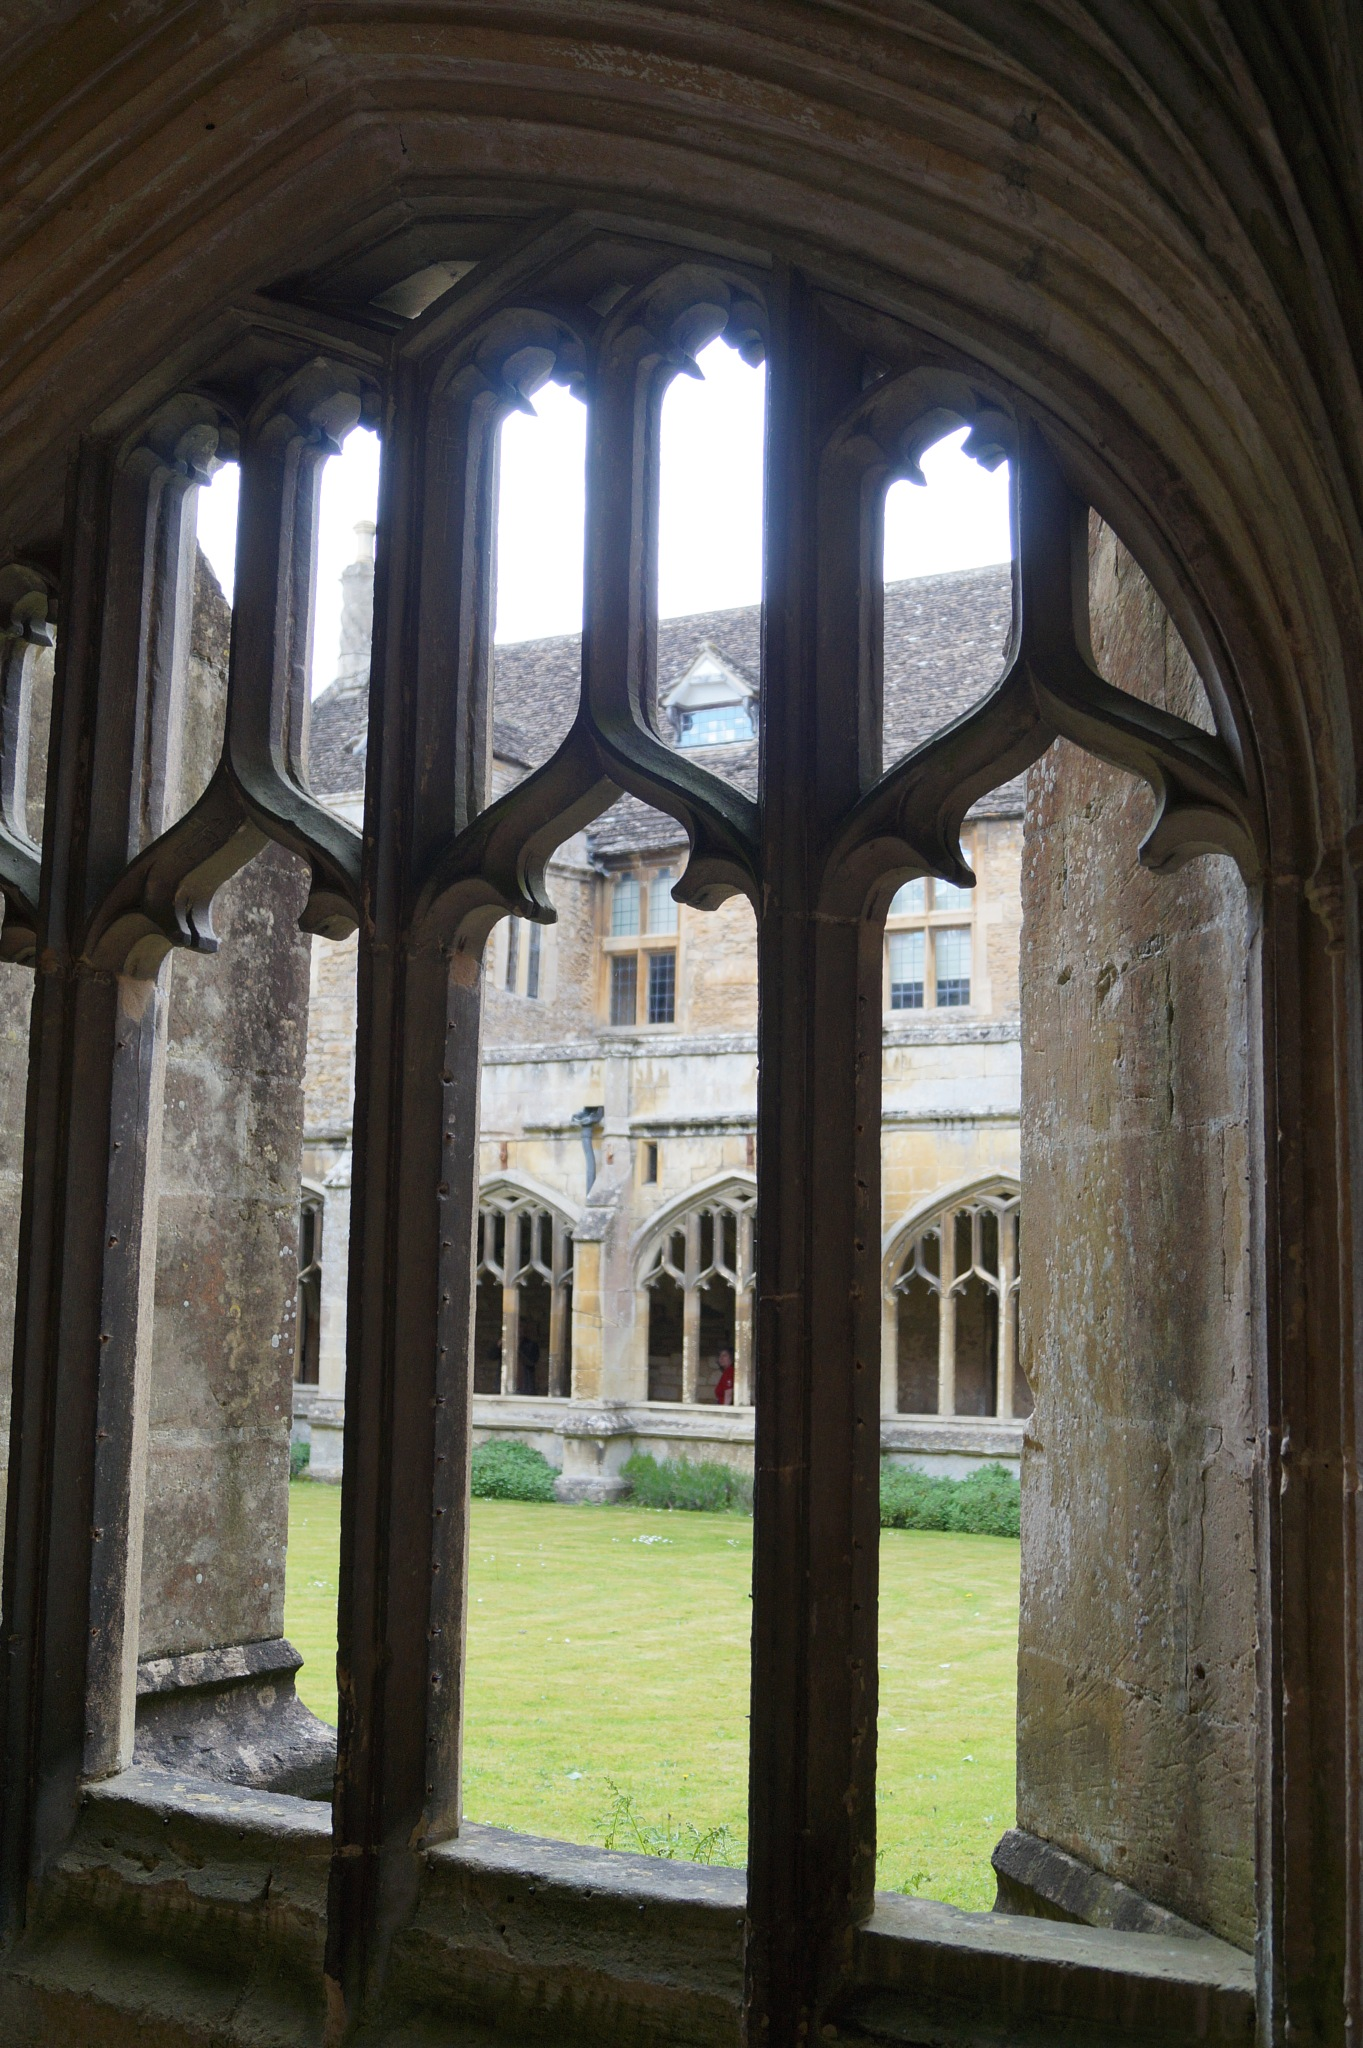 HARRY POTTER'S CLOISTERS by shotters